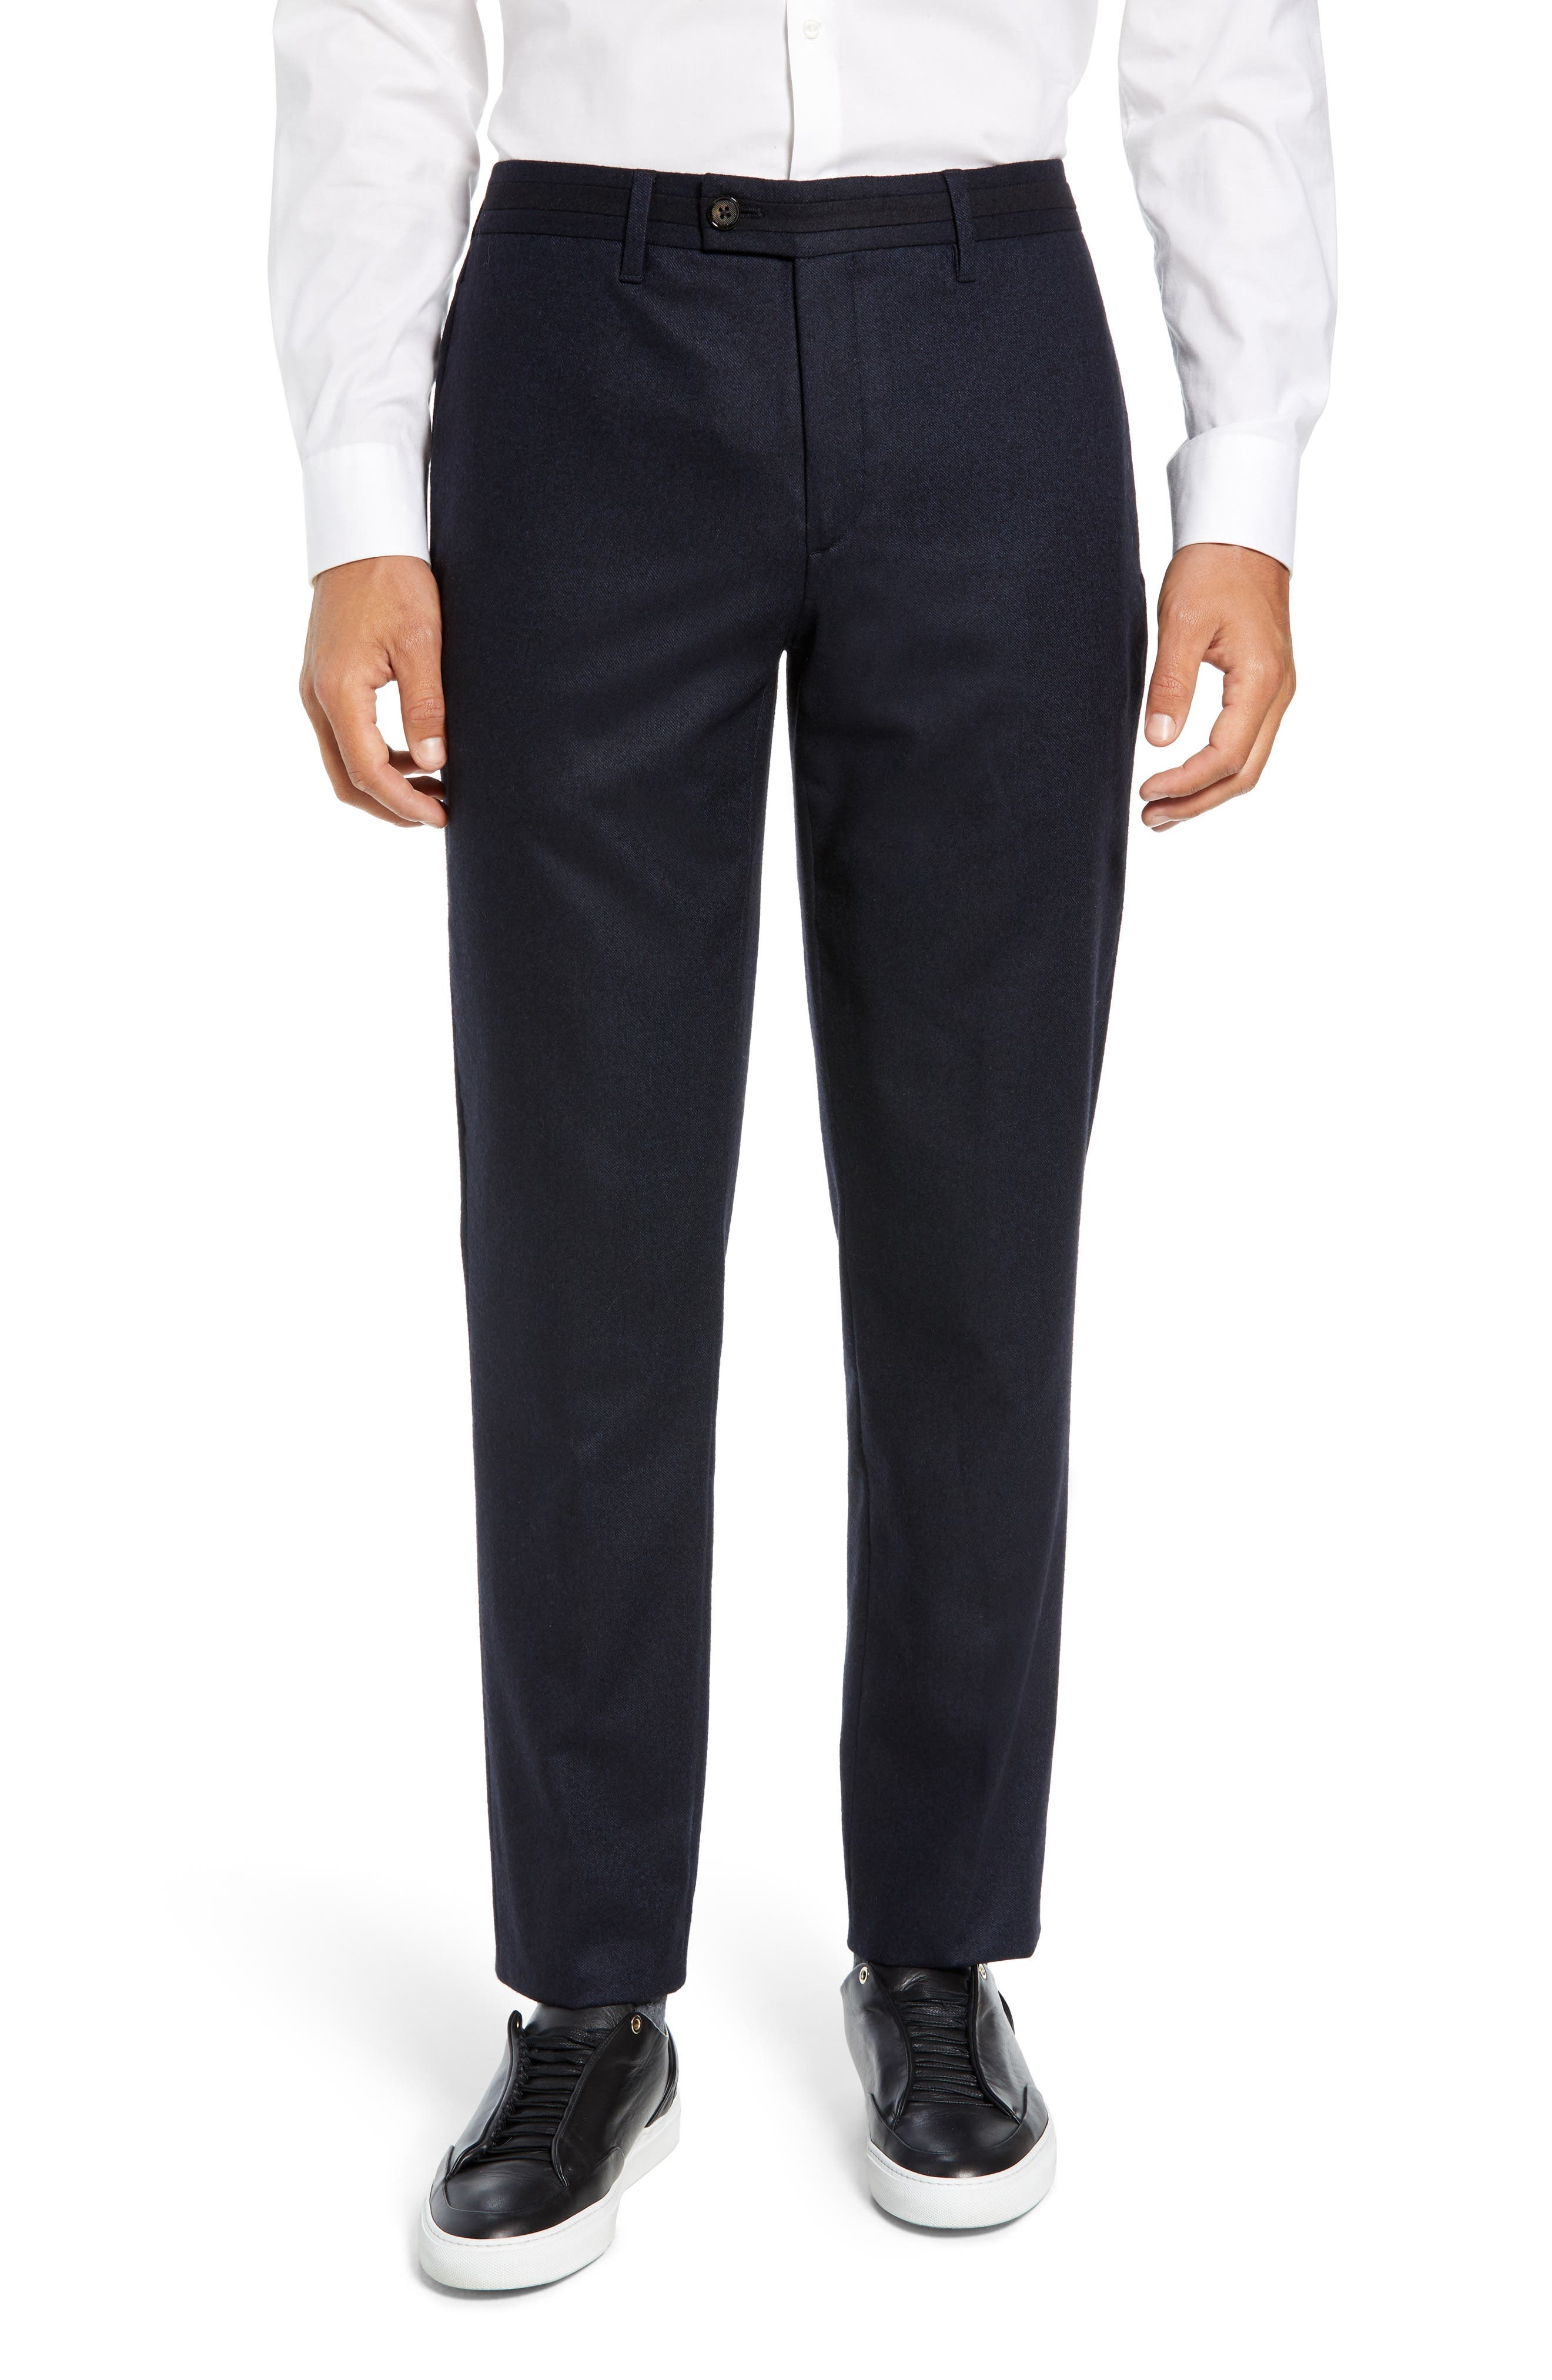 Matztro Trim Fit Wool Blend Trousers,                         Main,                         color, NAVY